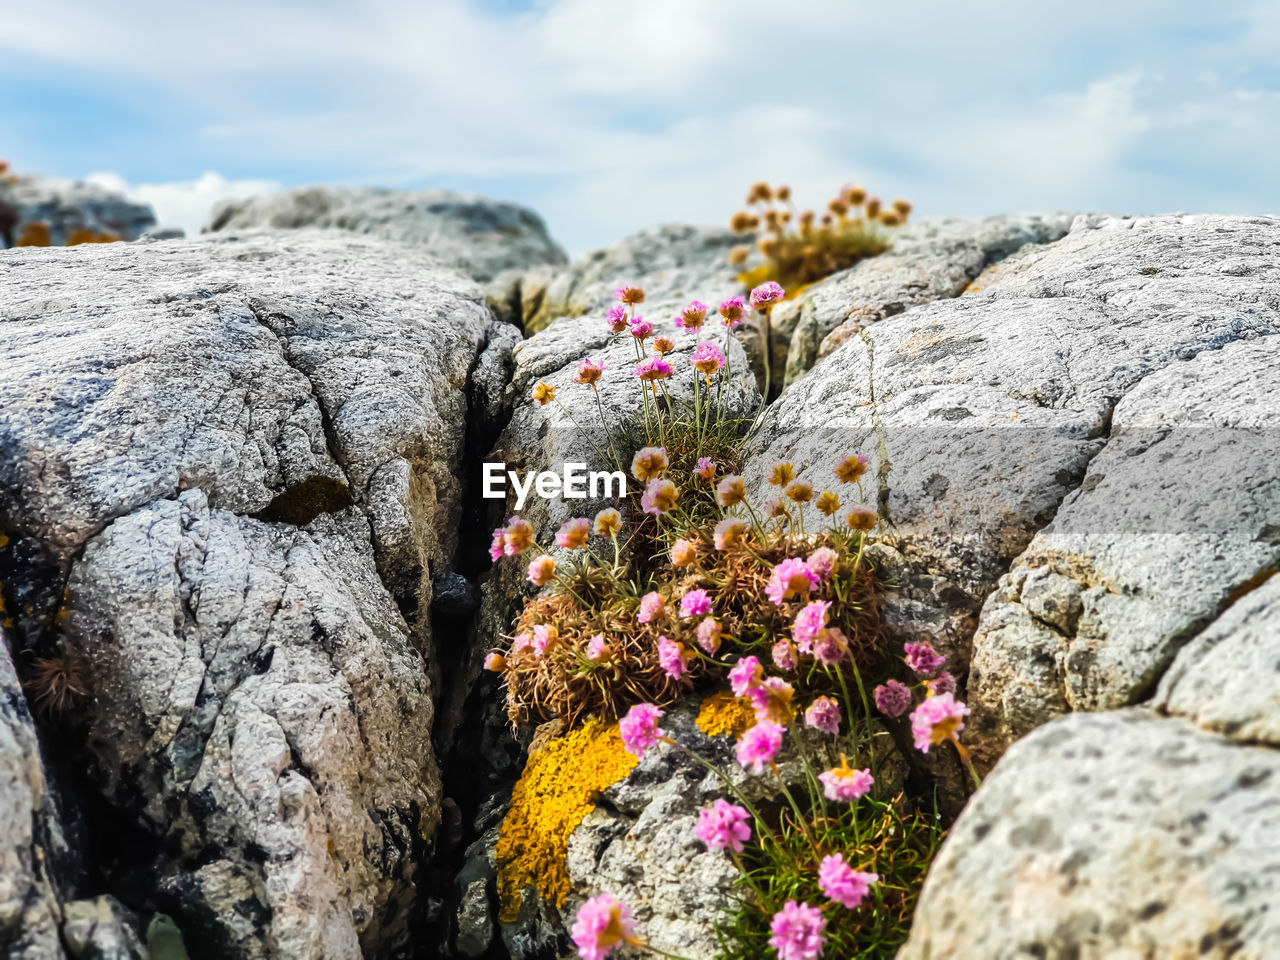 Close-Up Of Flowering Plants By Rocks Against Sky